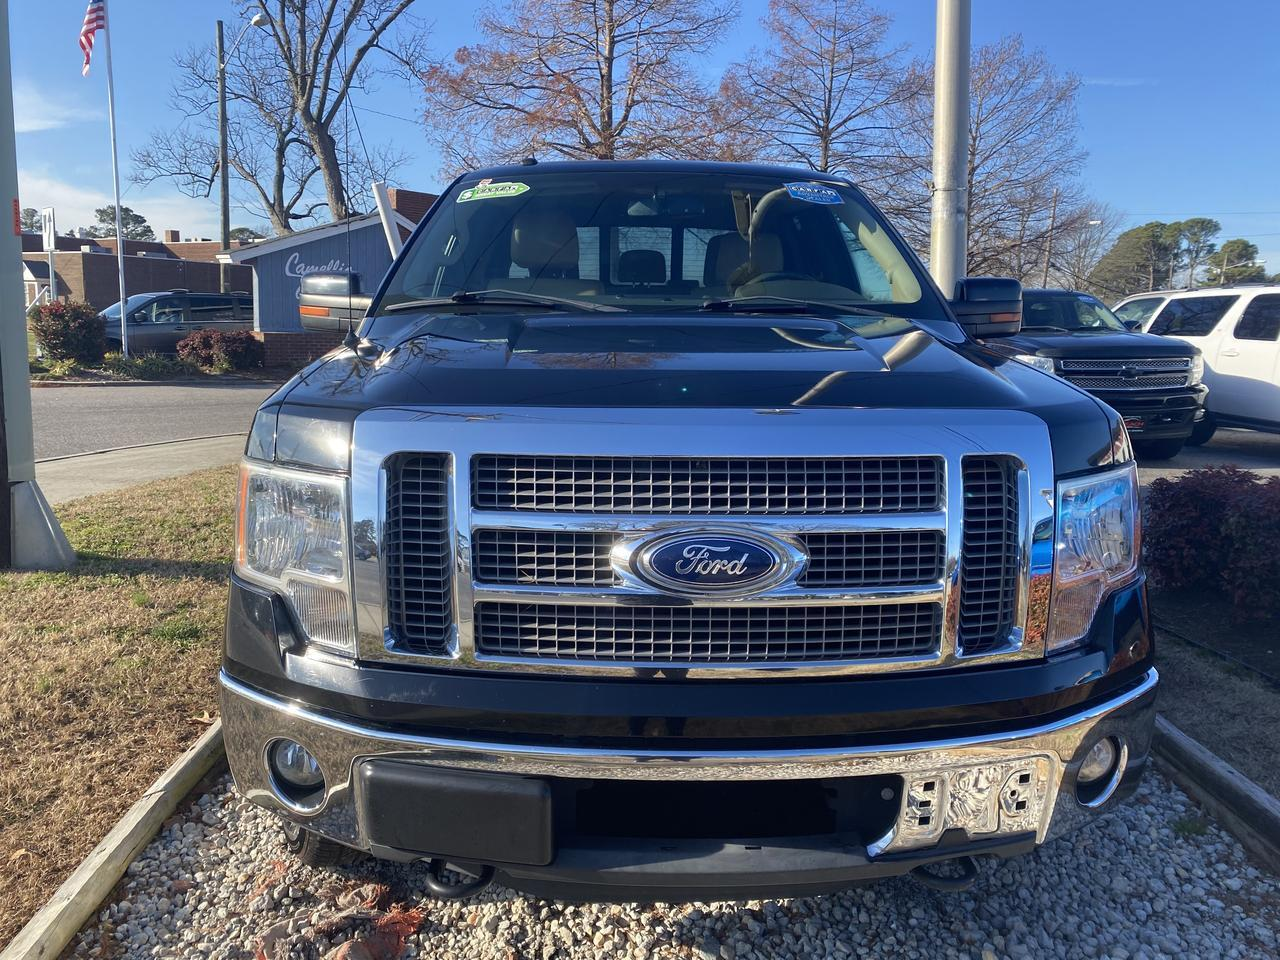 2011 FORD F-150 LARIAT SUPERCREW 4X4, WARRANY, LEATHER, NAV, HEATED/COOLED SEATS, SUNROOF, CLEAN CARFAX! Norfolk VA